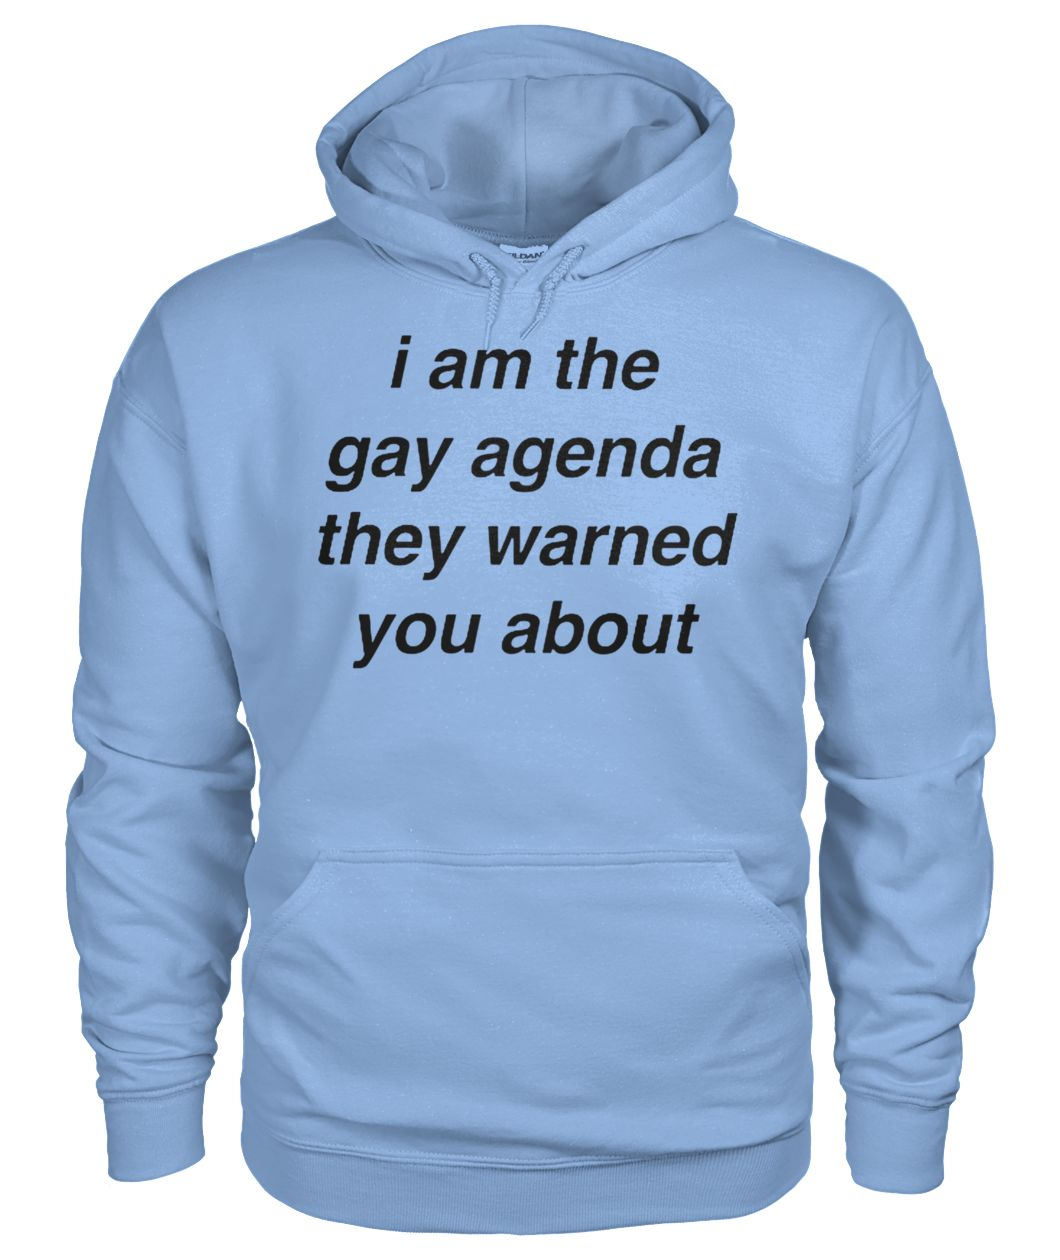 I am the gay agenda they warned you about gildan hoodie